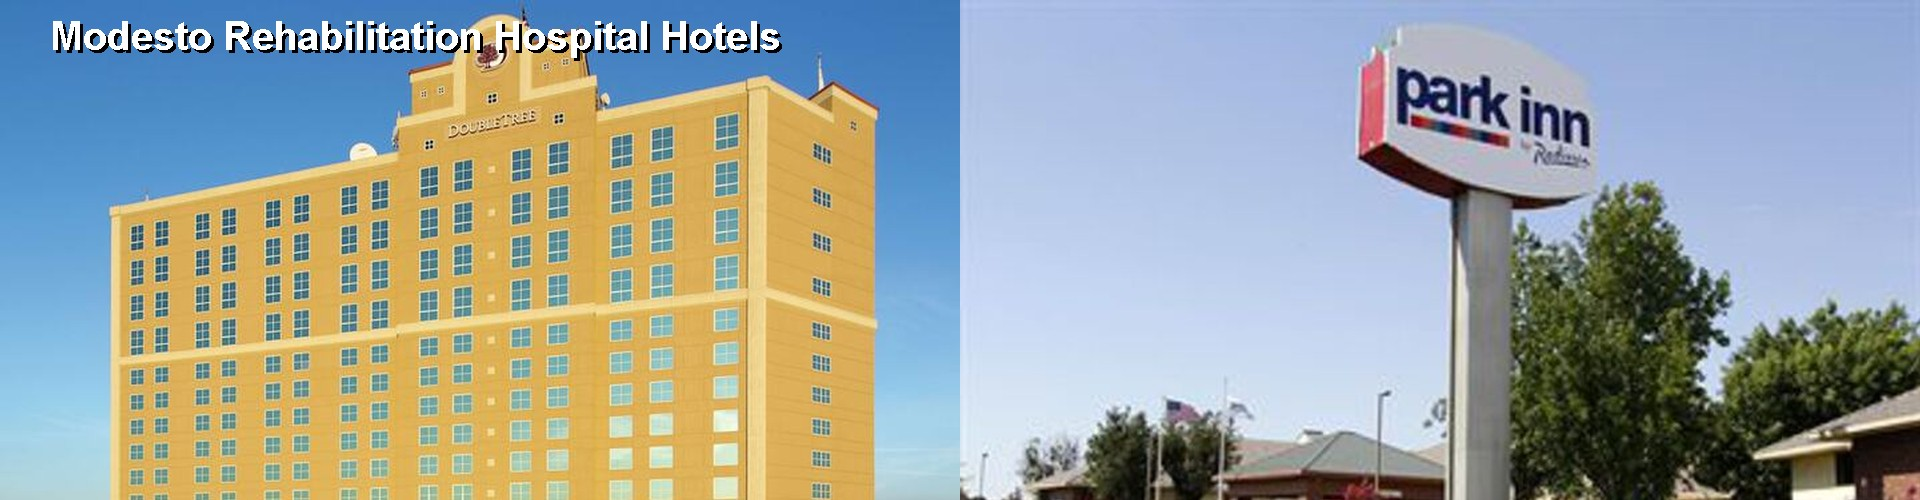 5 Best Hotels near Modesto Rehabilitation Hospital